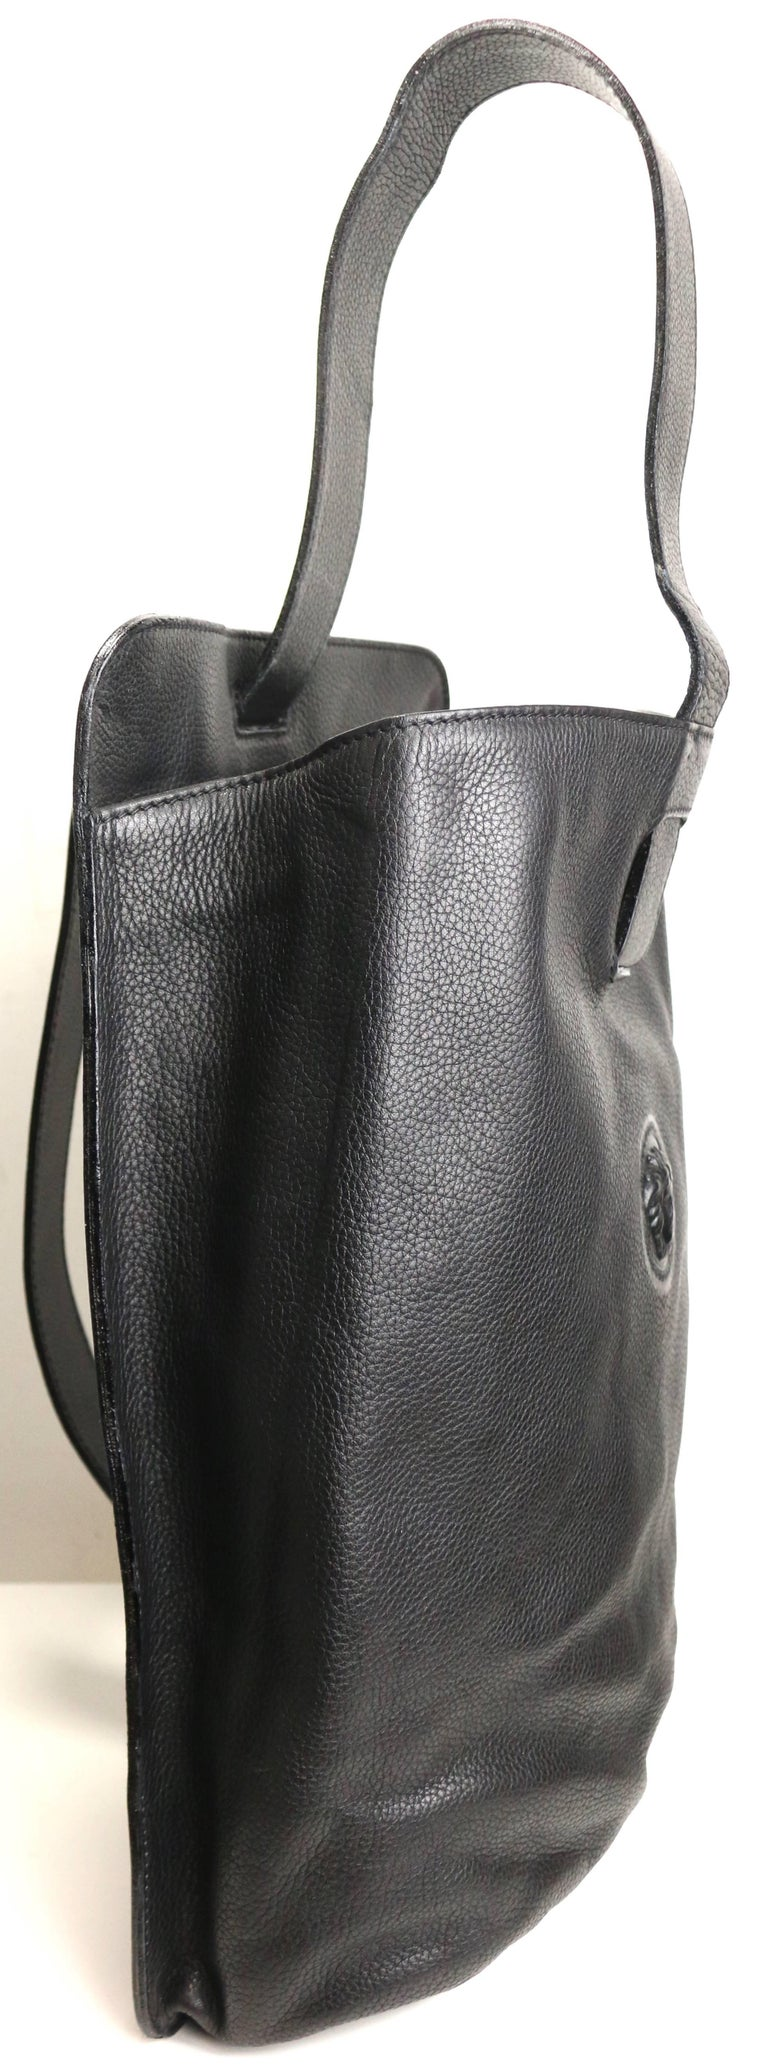 Gianni Versace Couture Black Leather Single Sling Strap Bag 2